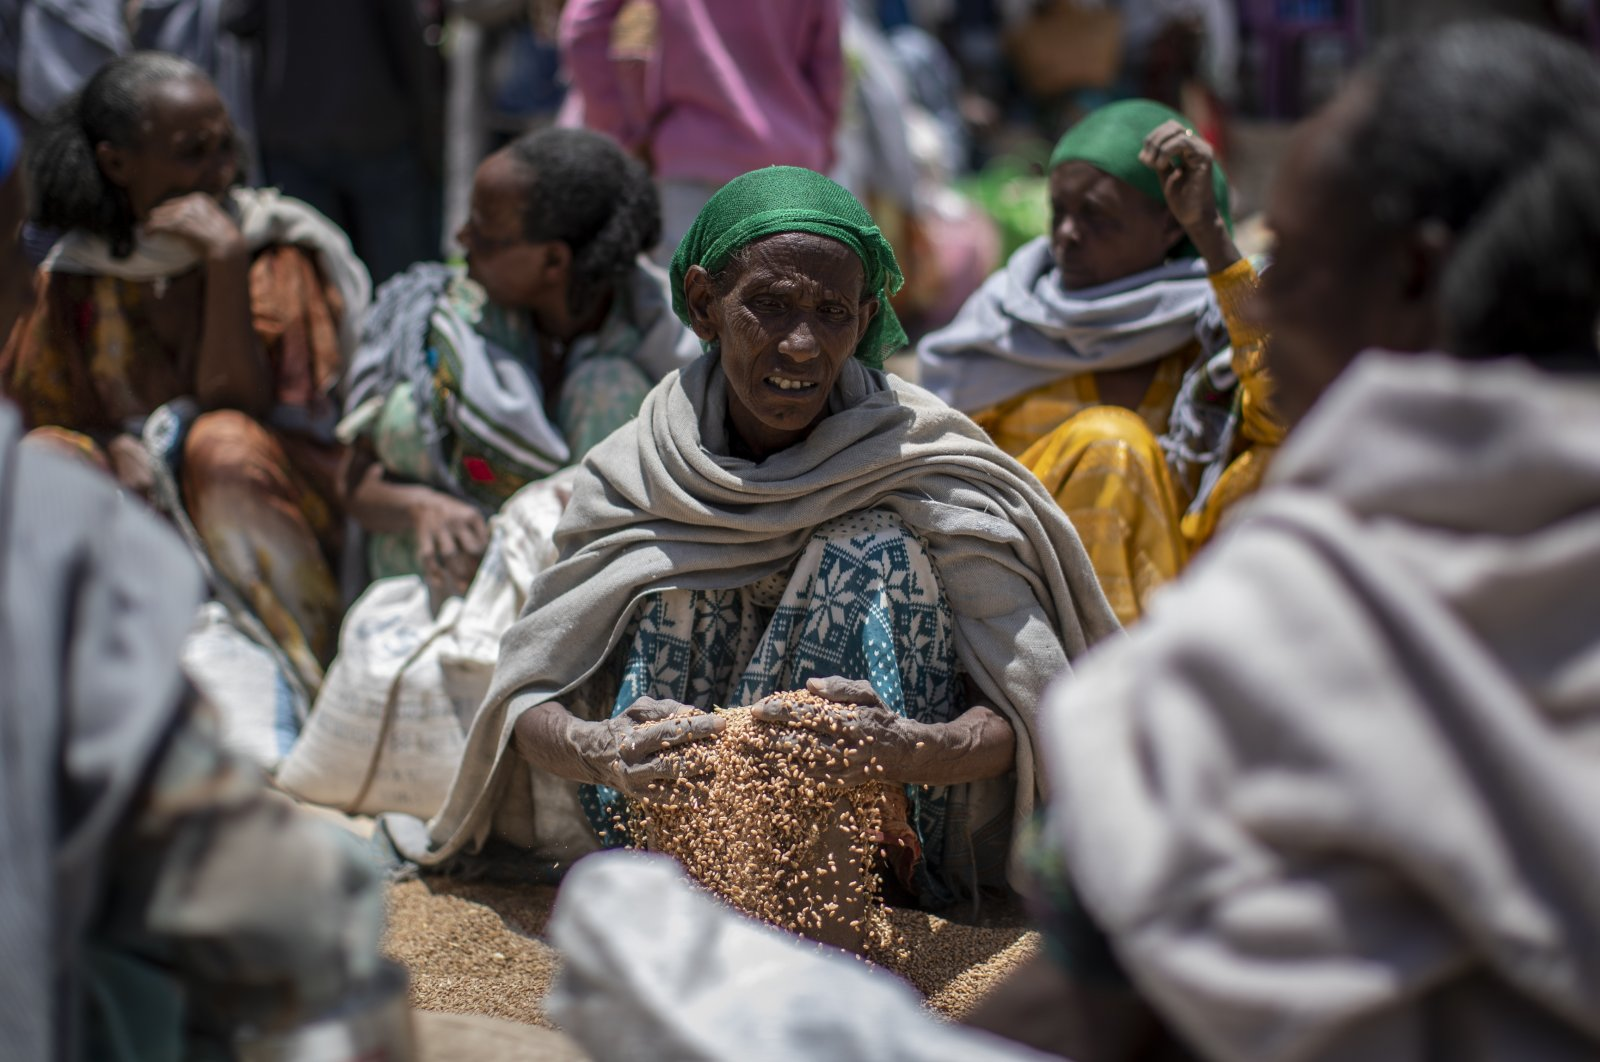 An Ethiopian woman scoops up grains of wheat after it was distributed by the Relief Society of Tigray in the town of Agula, in the Tigray region of northern Ethiopia, May 8, 2021. (AP Photo)